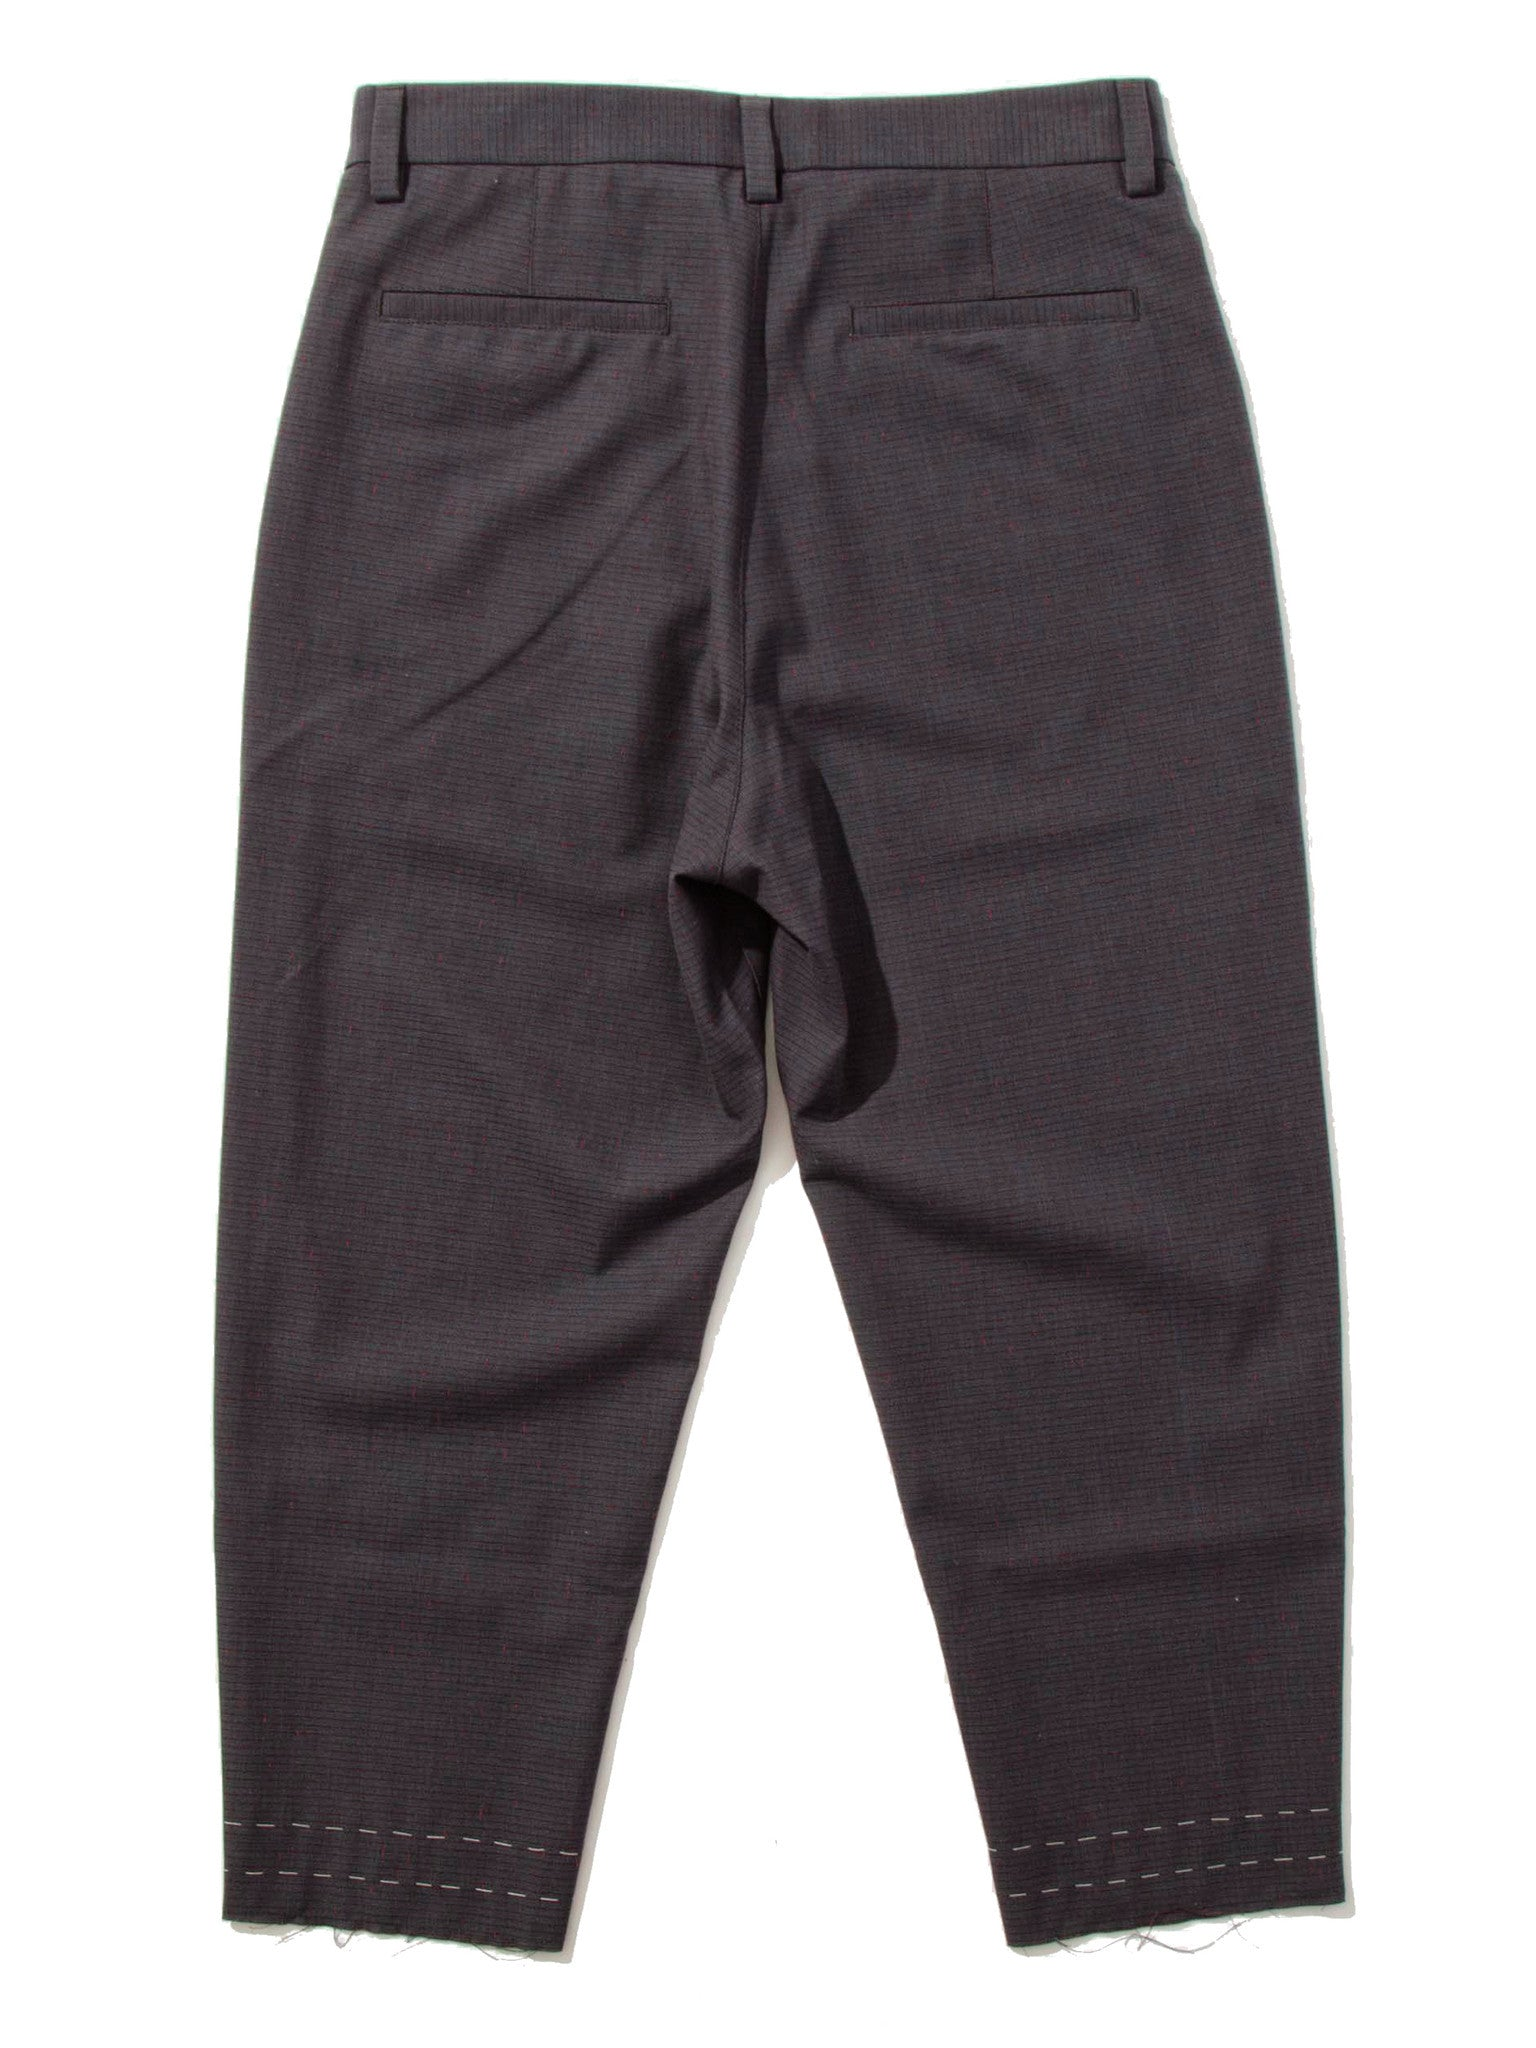 Grey/Red Cropped Drift Pant (Check) 5